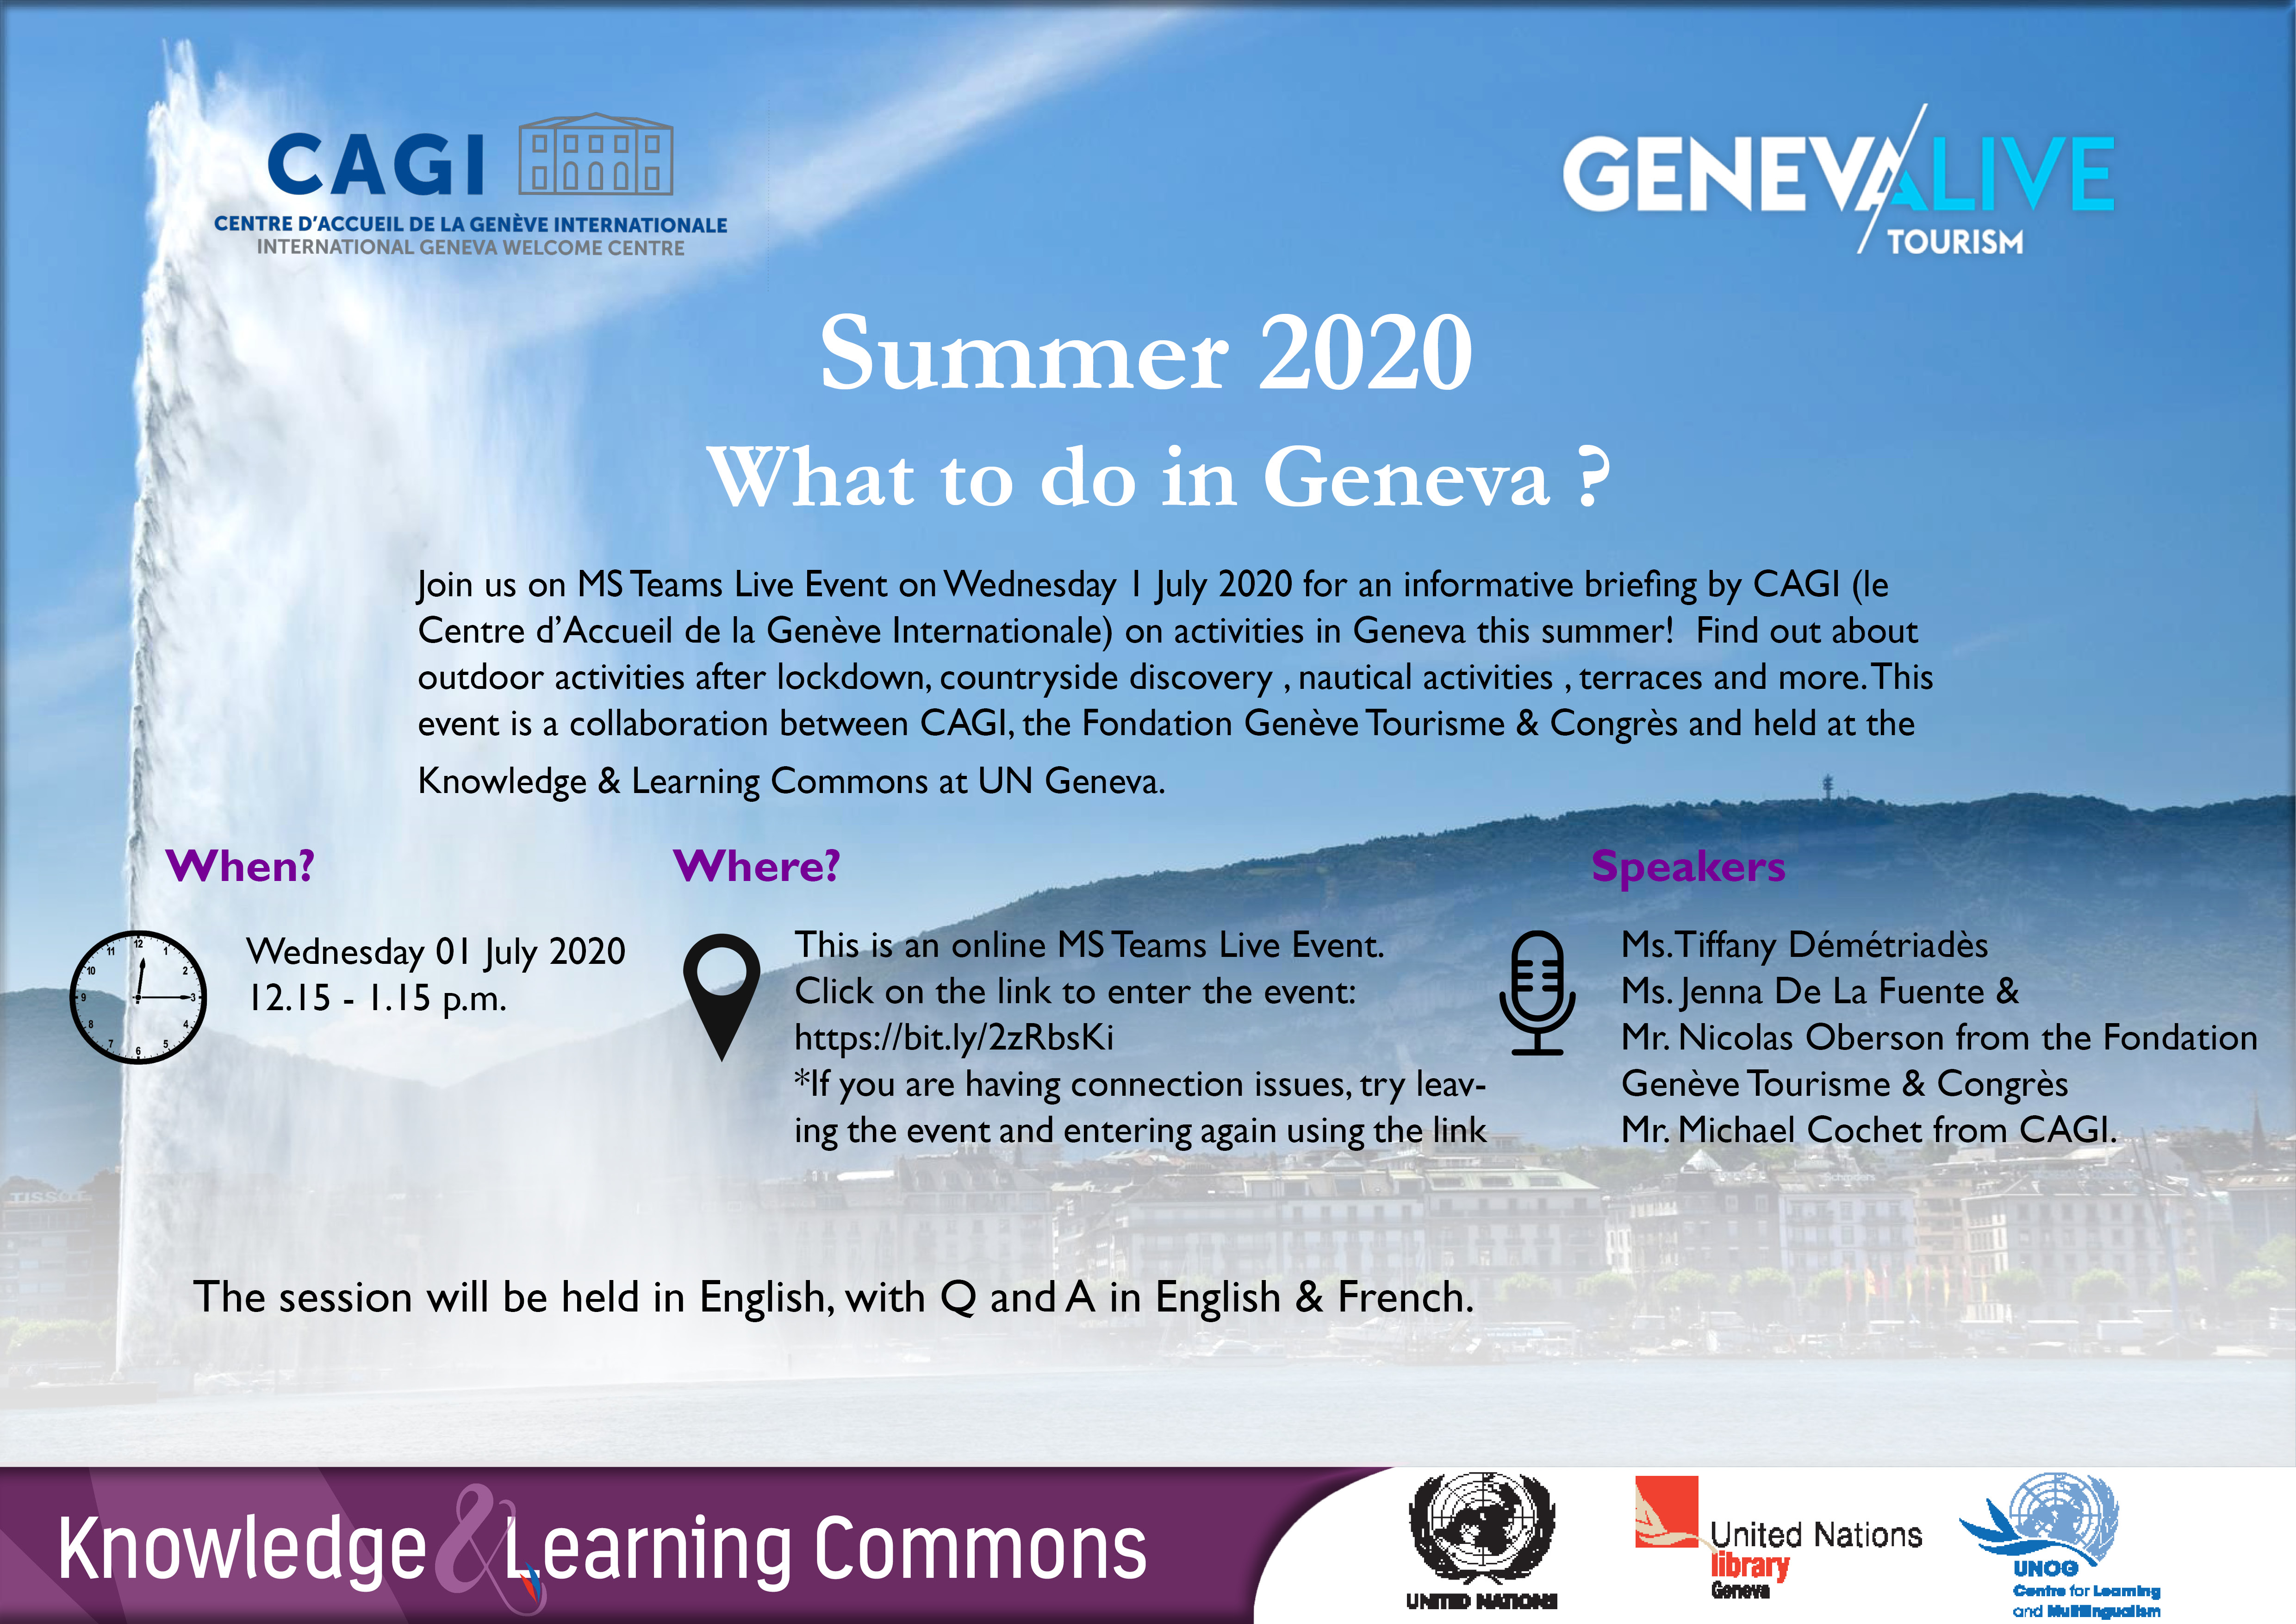 Summer 2020, What to do in Geneva